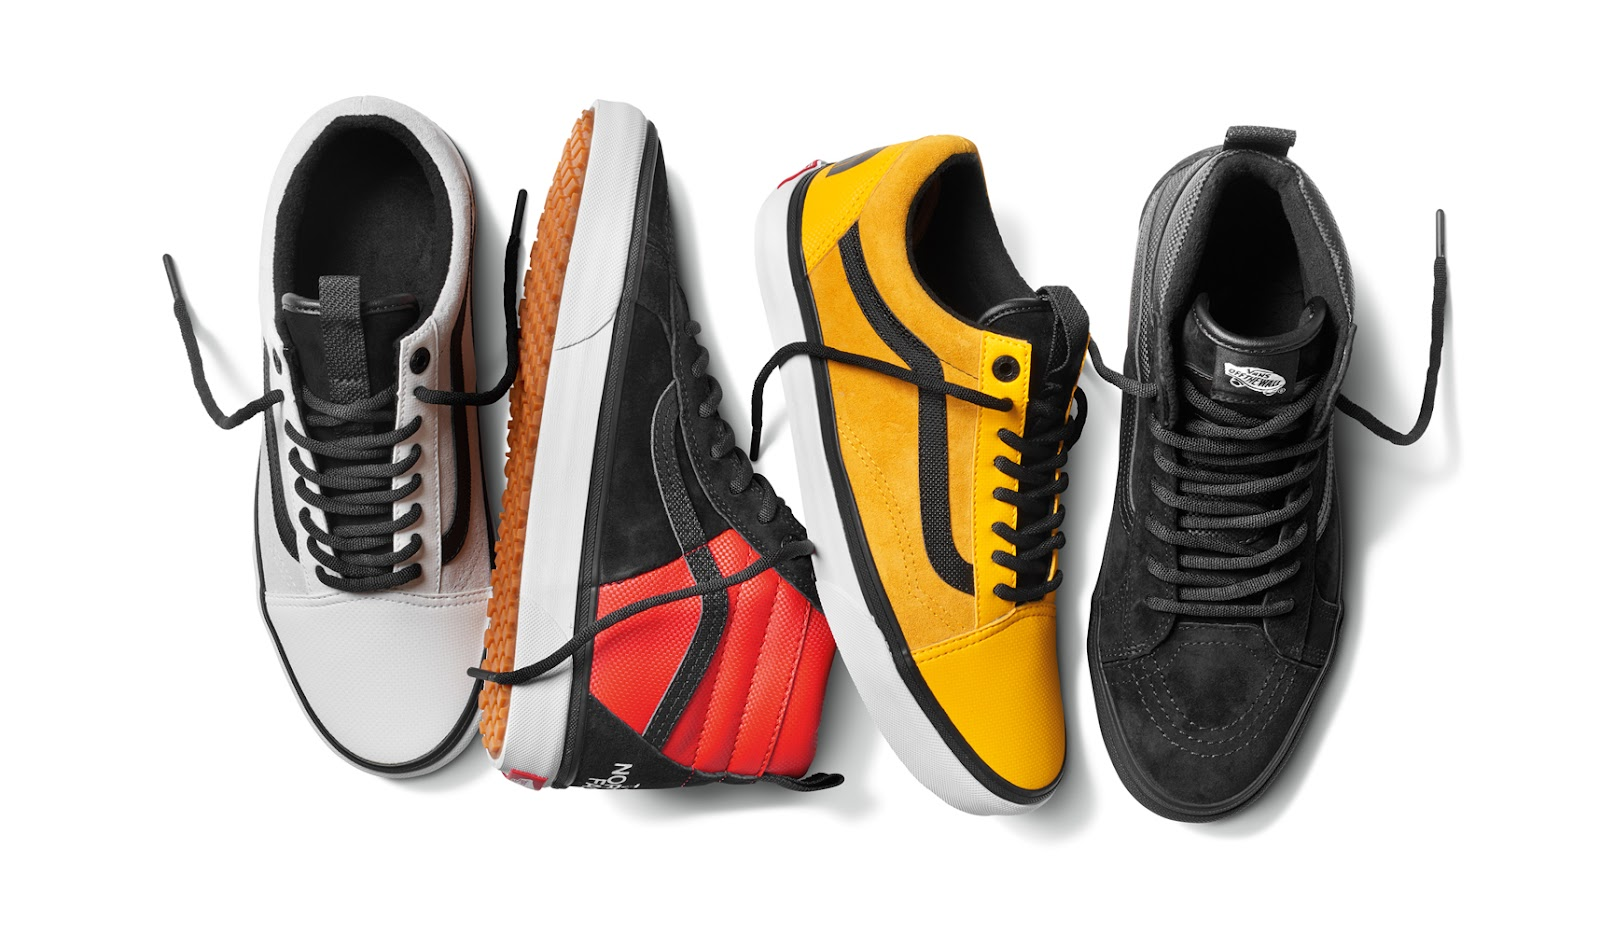 4a773c8d0d Urban meets Rural in New Vans The North Face Collection ...